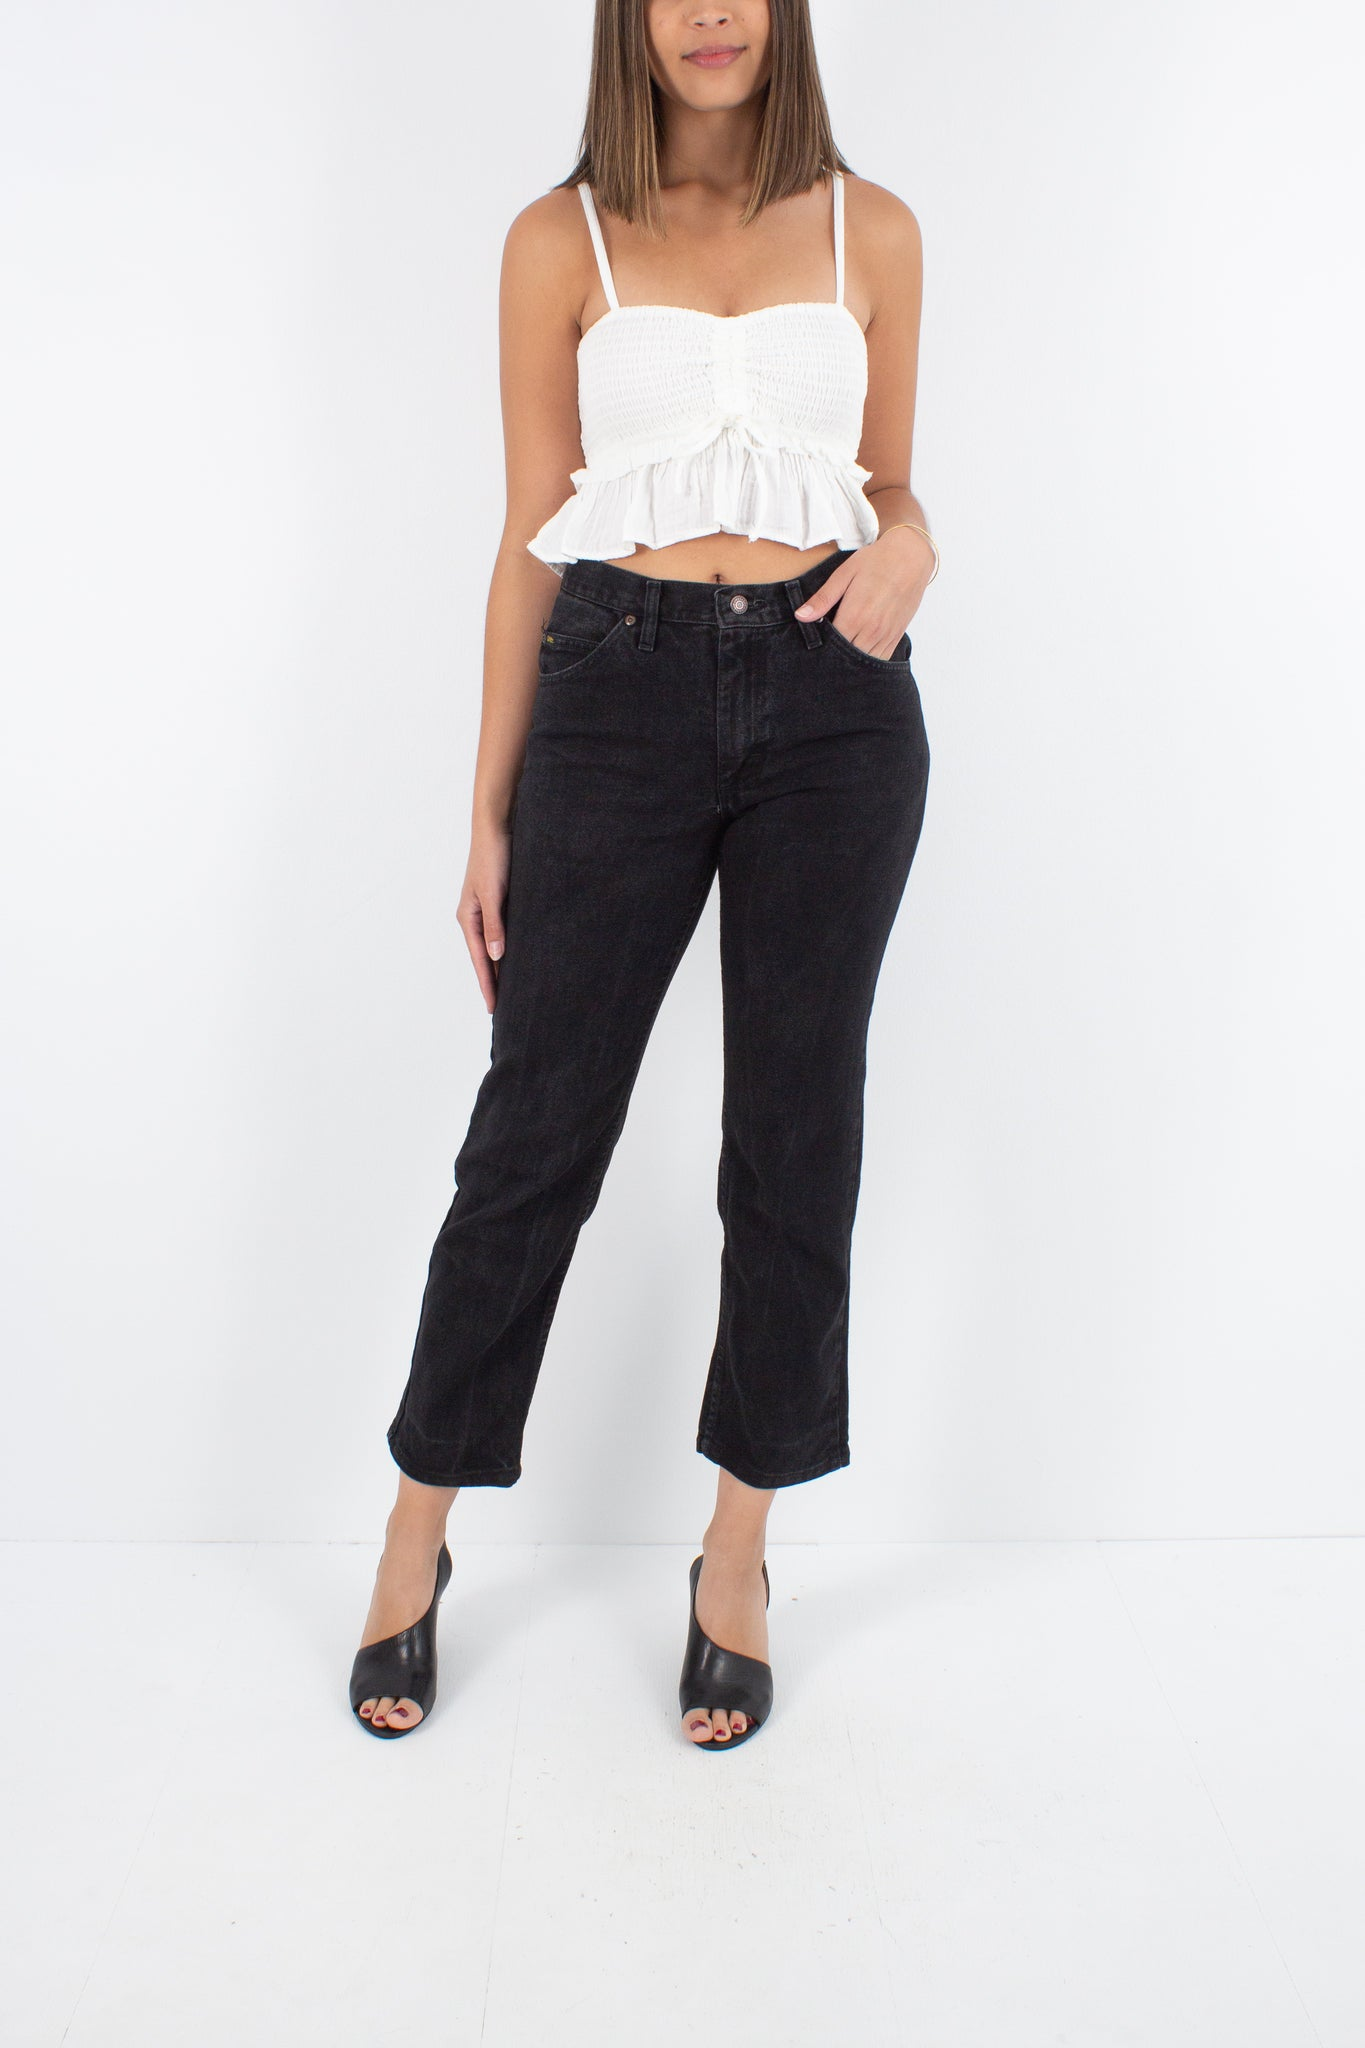 LEE Mid Rise Jeans in Black - Size S/M 29""